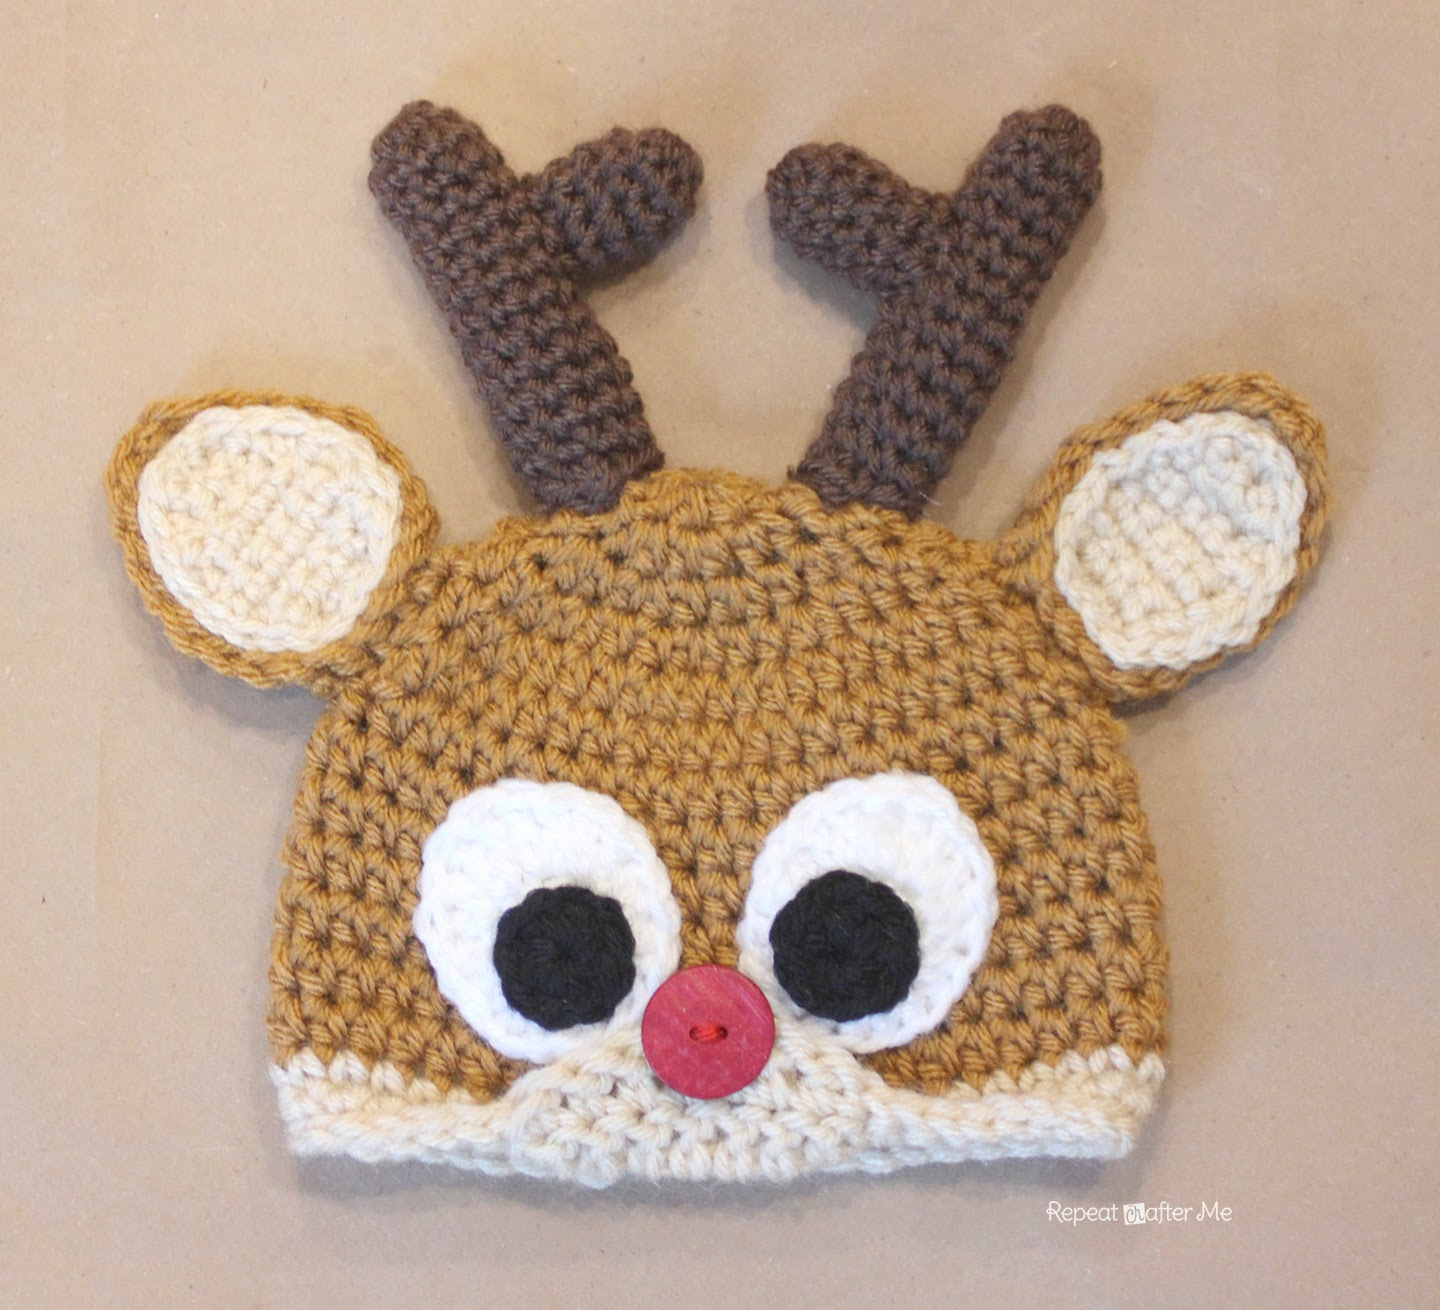 Crochet Reindeer Antlers Pattern - Repeat Crafter Me